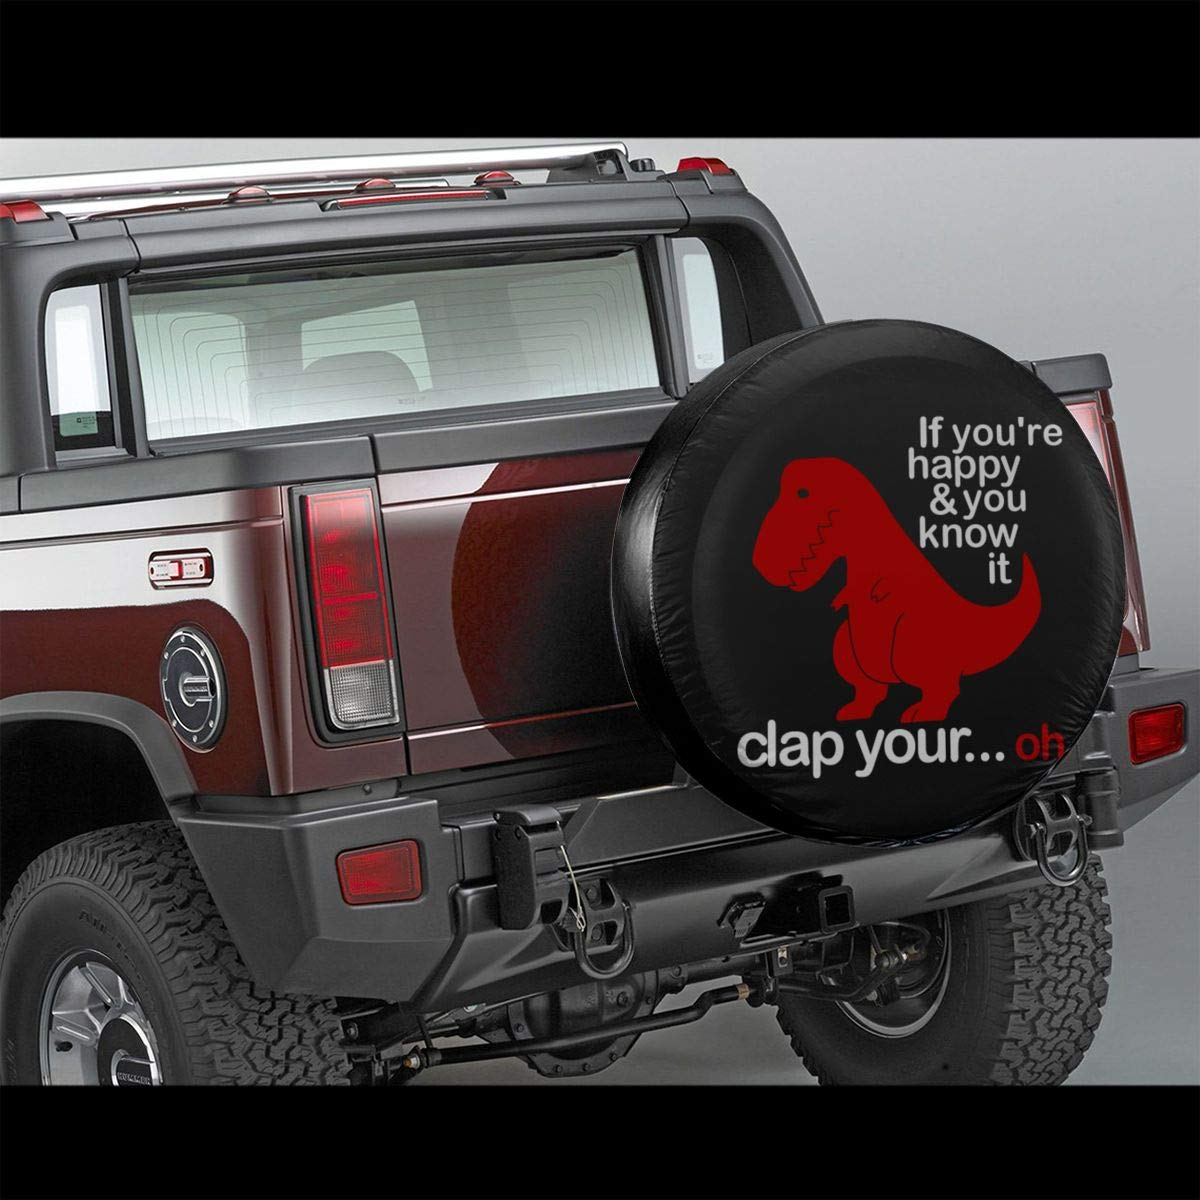 T Rex Funny Quotes with Text Dinosaurs Personalized Tire Cover Tire Sun Protectors Fit for Jeep Wrangler Camper